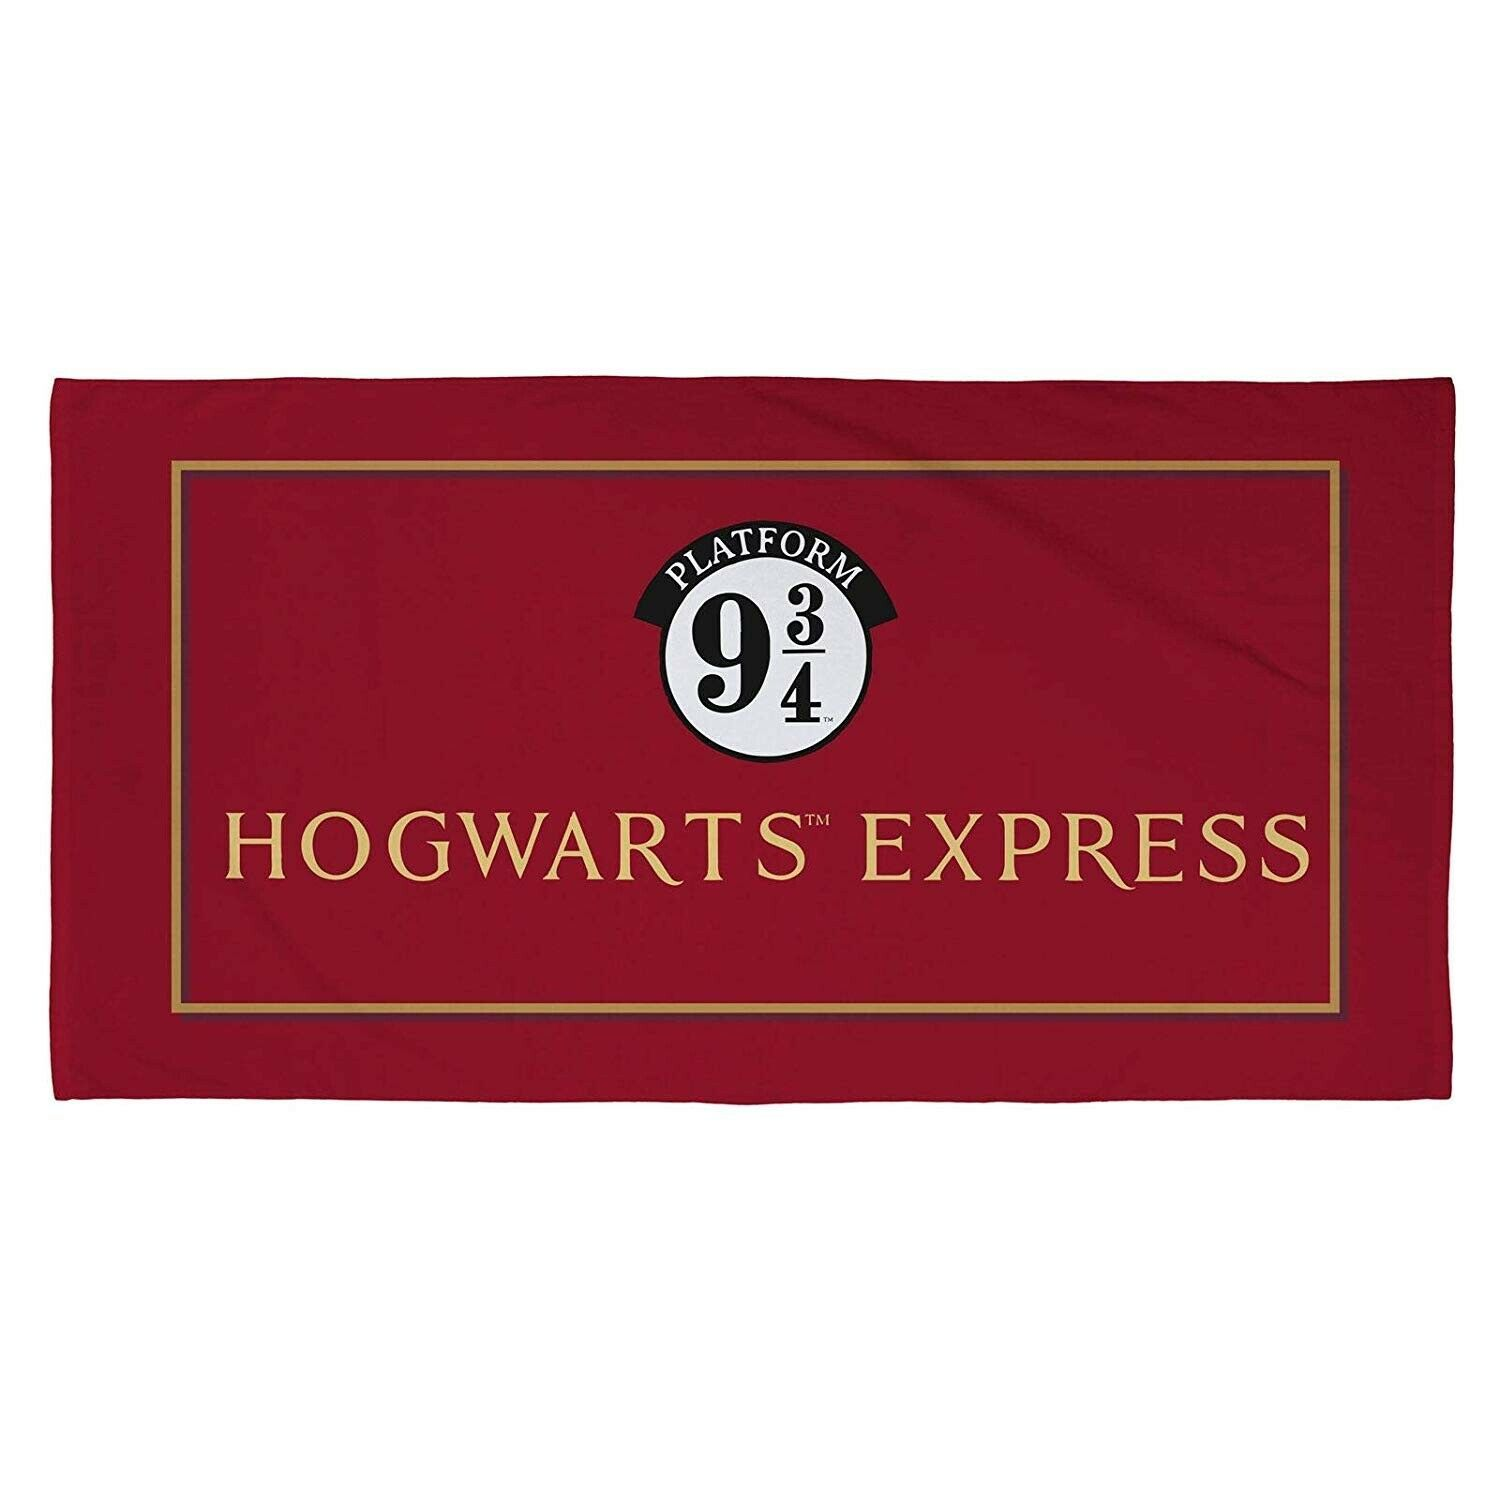 Harry Potter Towel Towel Cool Clobber Limited